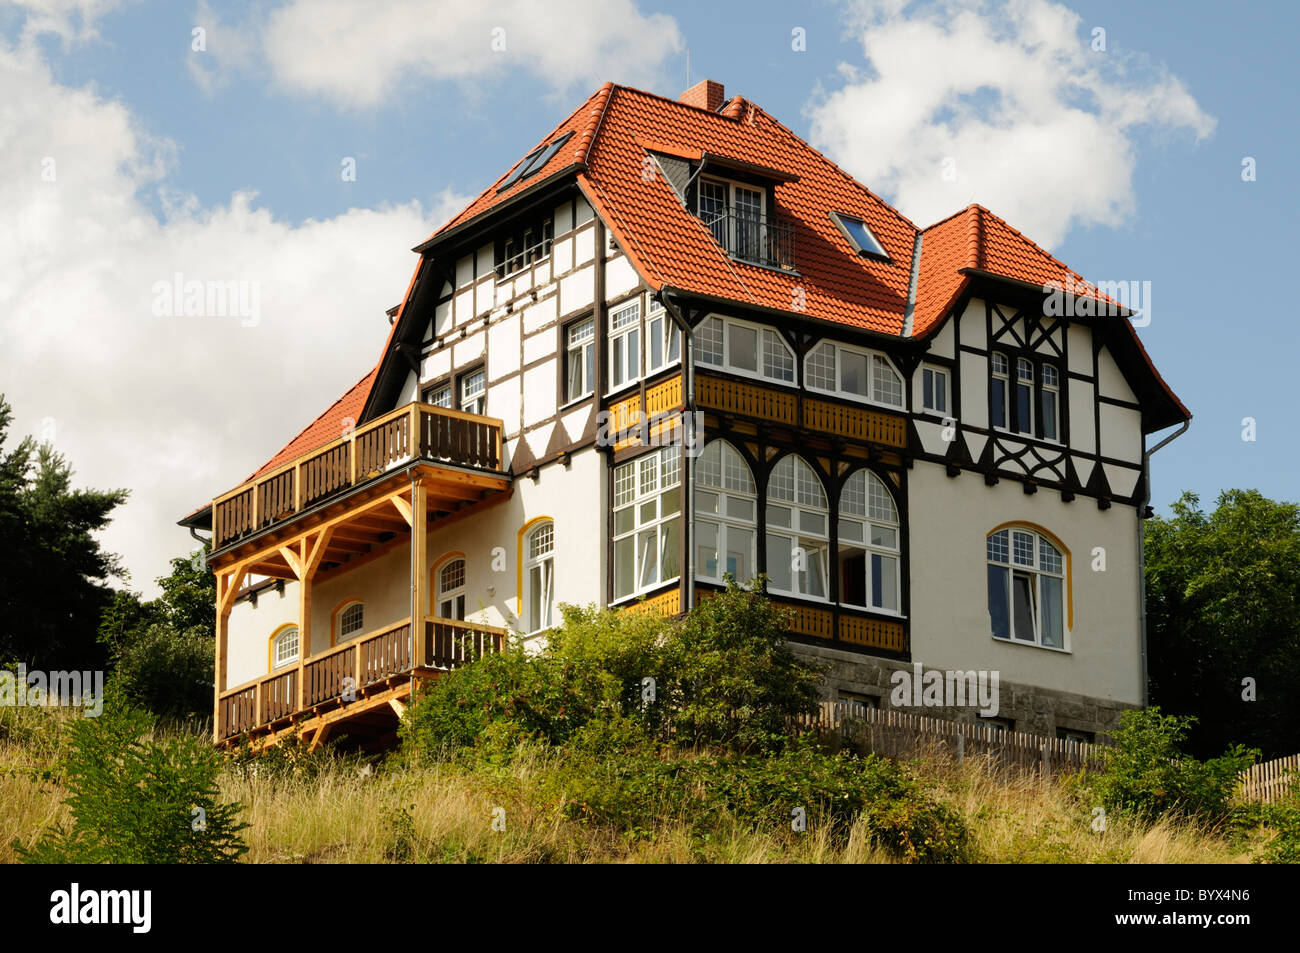 villa im fachwerkstil wernigerode deutschland mansion in the stock photo royalty free. Black Bedroom Furniture Sets. Home Design Ideas